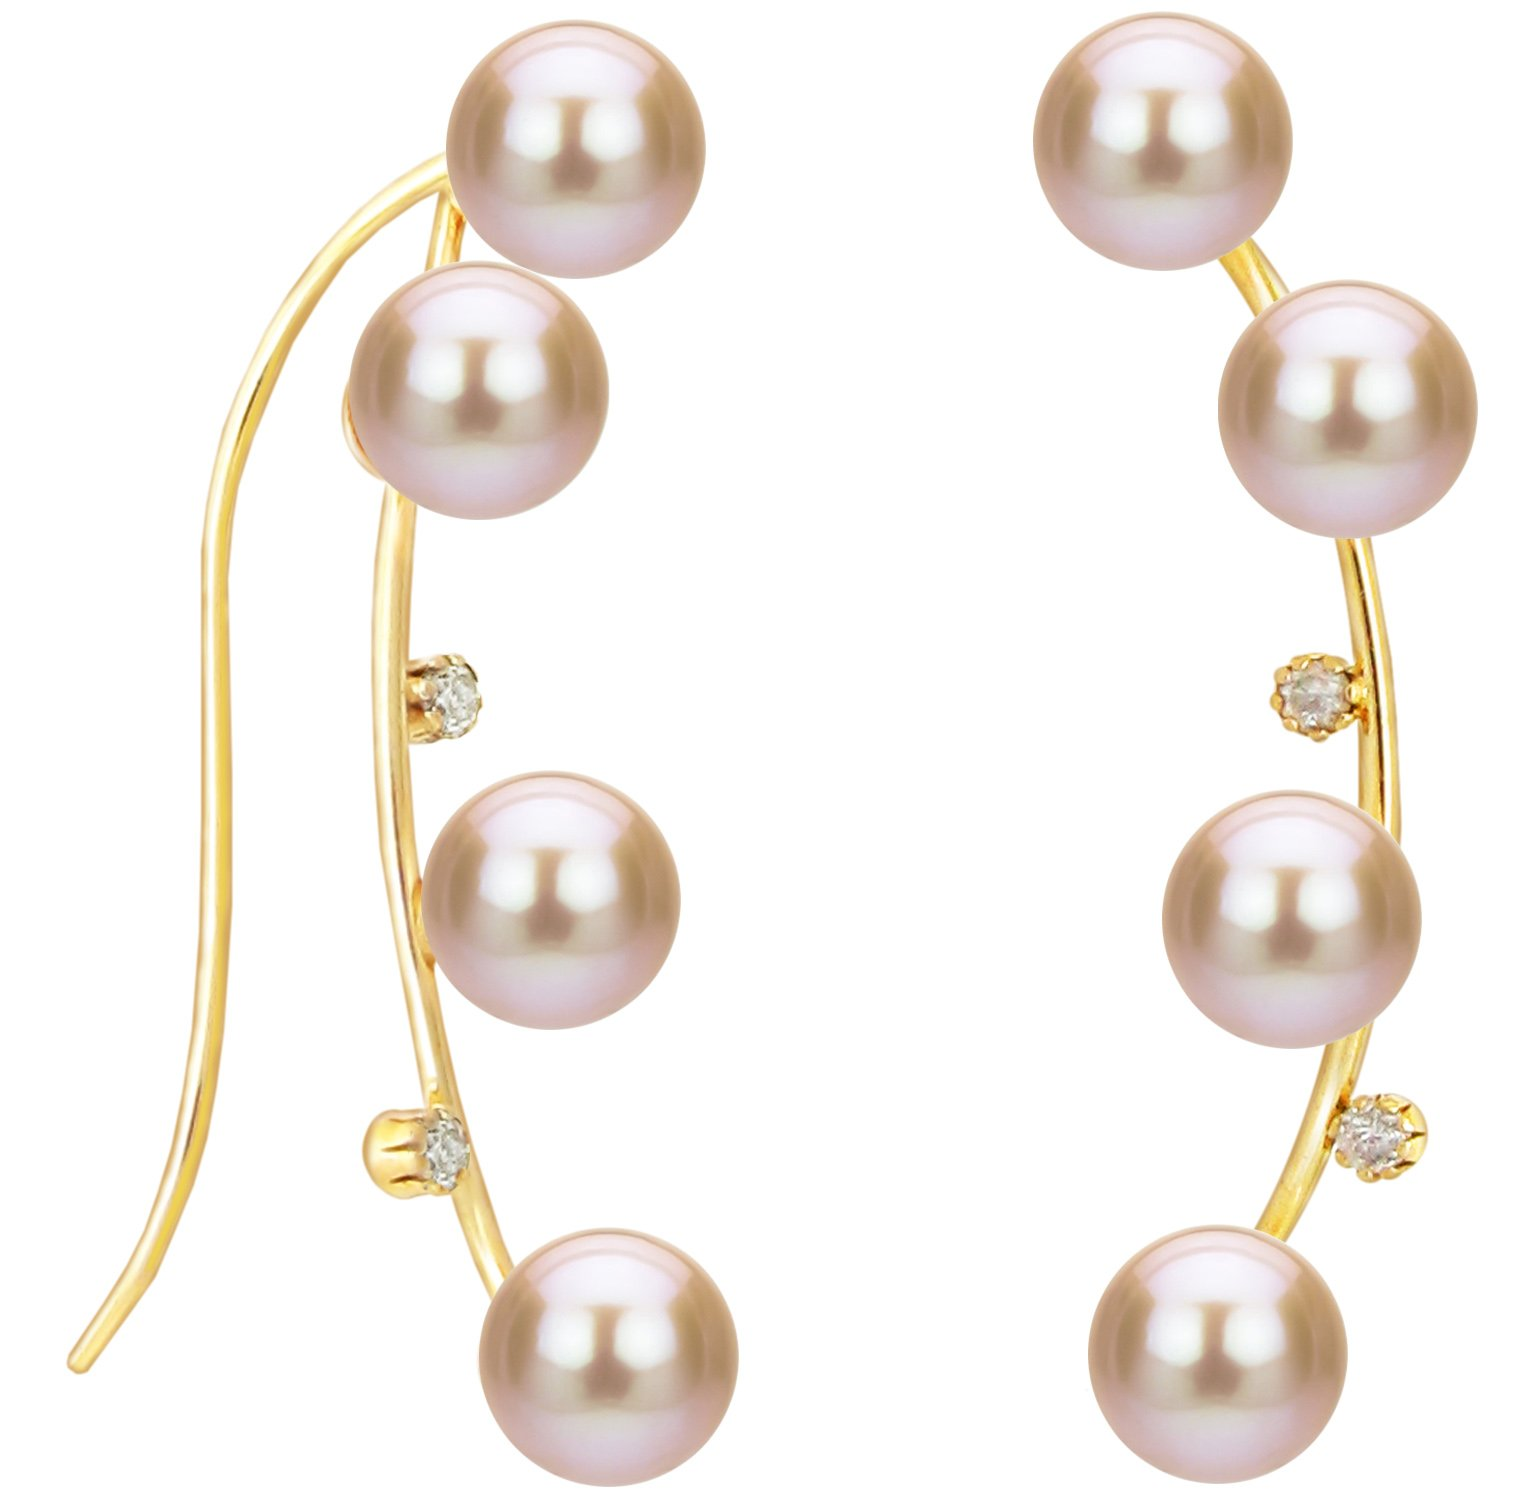 14k Yellow Gold .04tcw Diamond 4-4.5mm Pink Freshwater Cultured Pearl Crawler Earrings